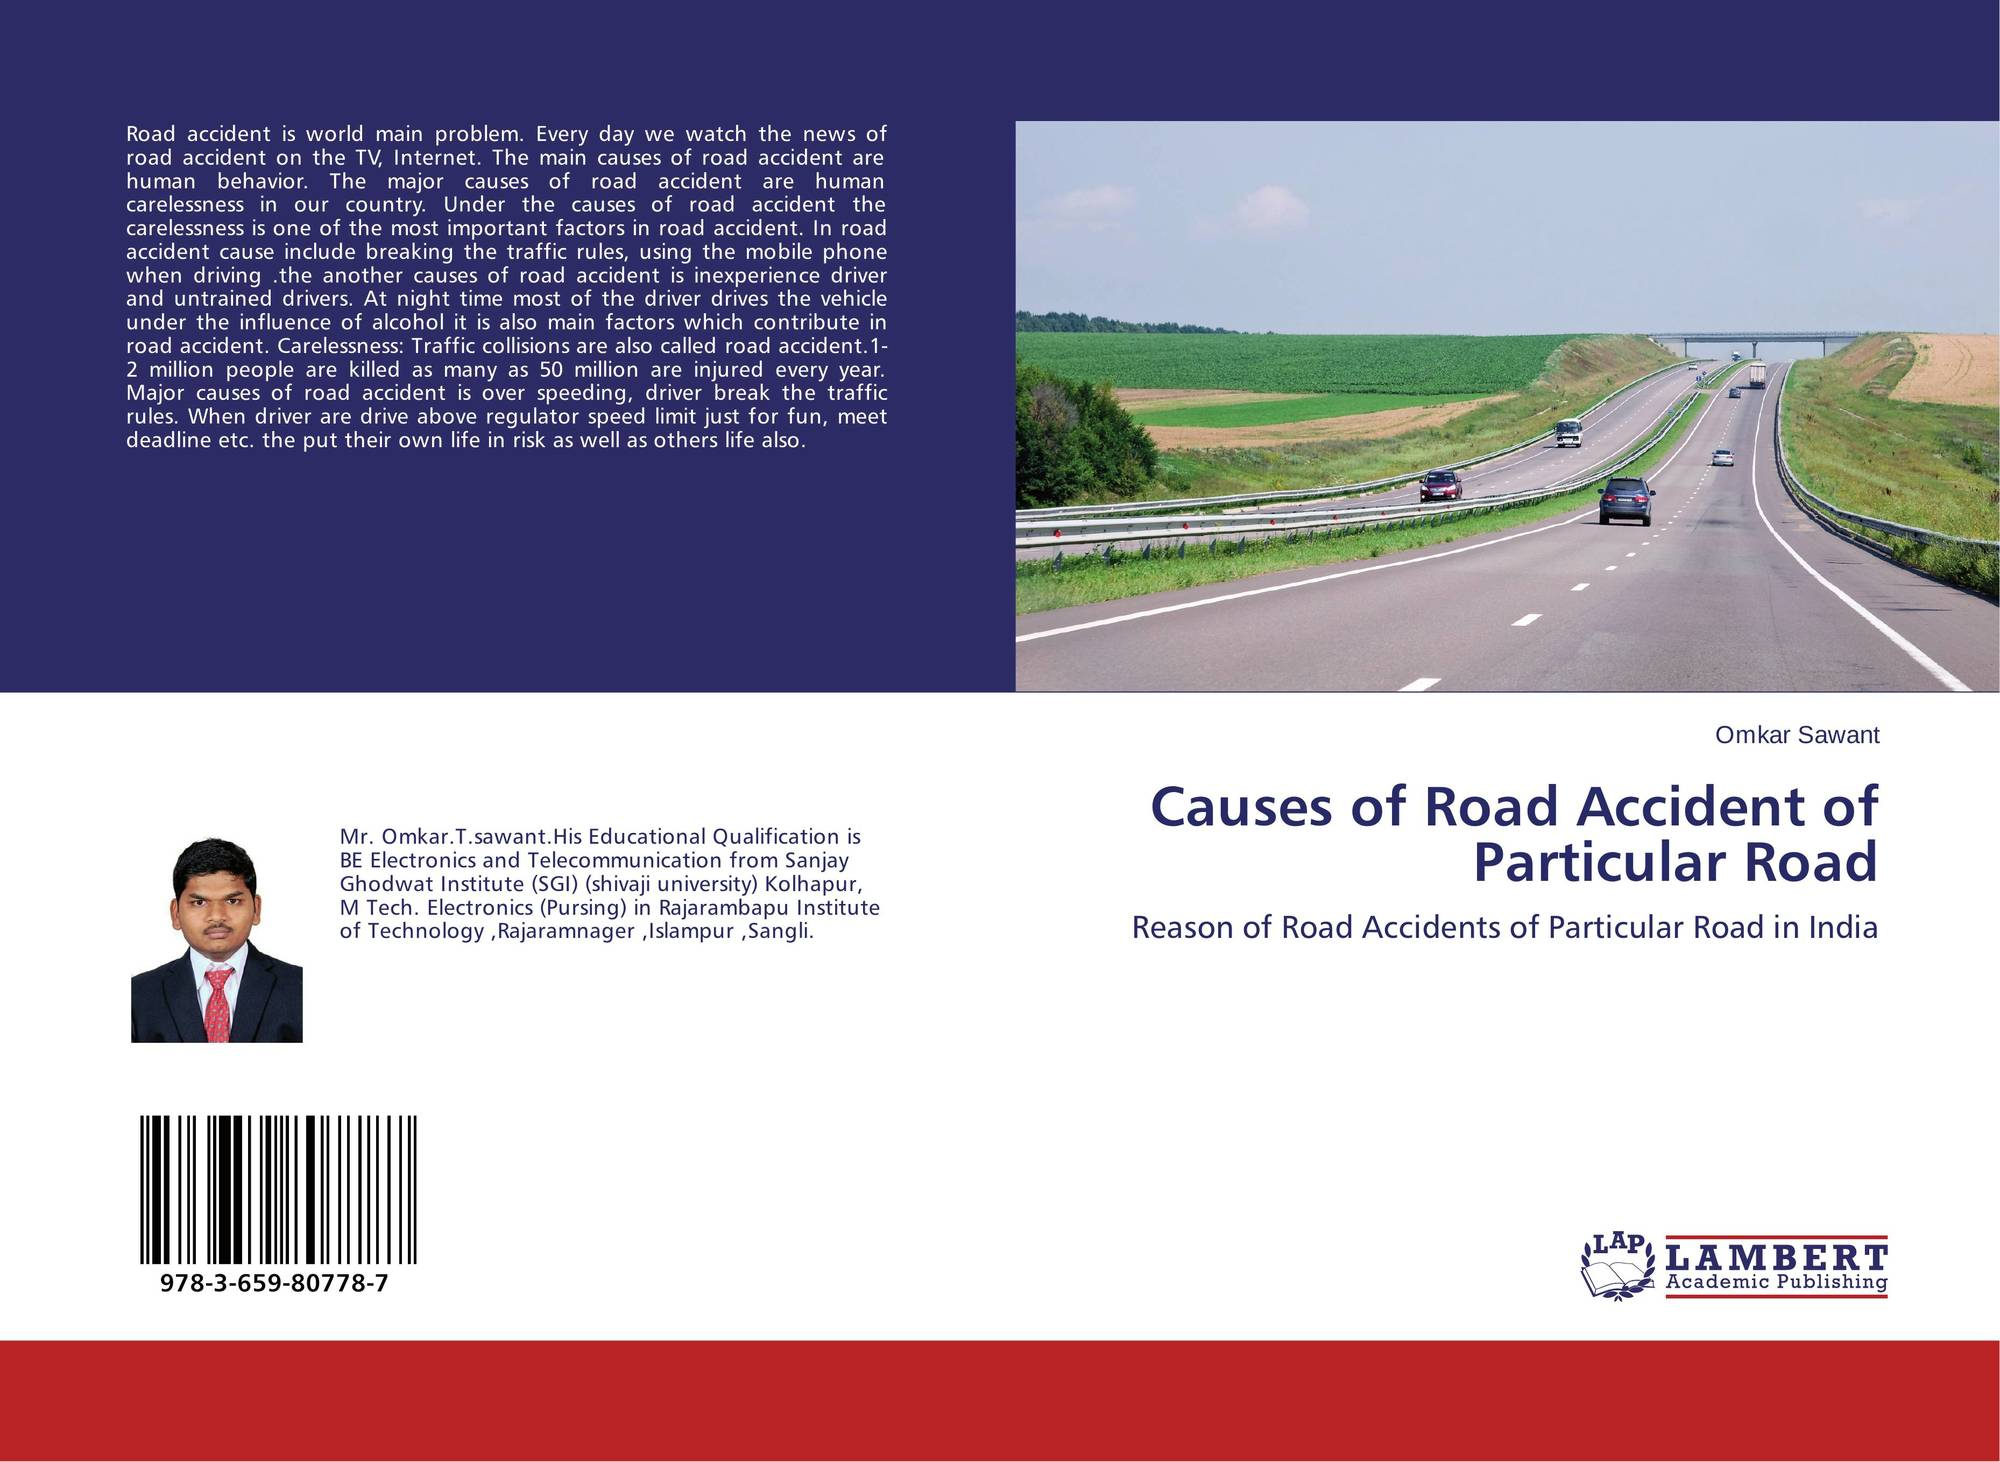 causes of road accident in kelantan malaysia essay The most dangerous and serious problem americans deal with is accidents on the road in the essay i will discuss the causes of car accidents  there are many causes of accidents on the road driving under the influence of alcohol is one of them  essays related to causes and effect of car accidents 1.